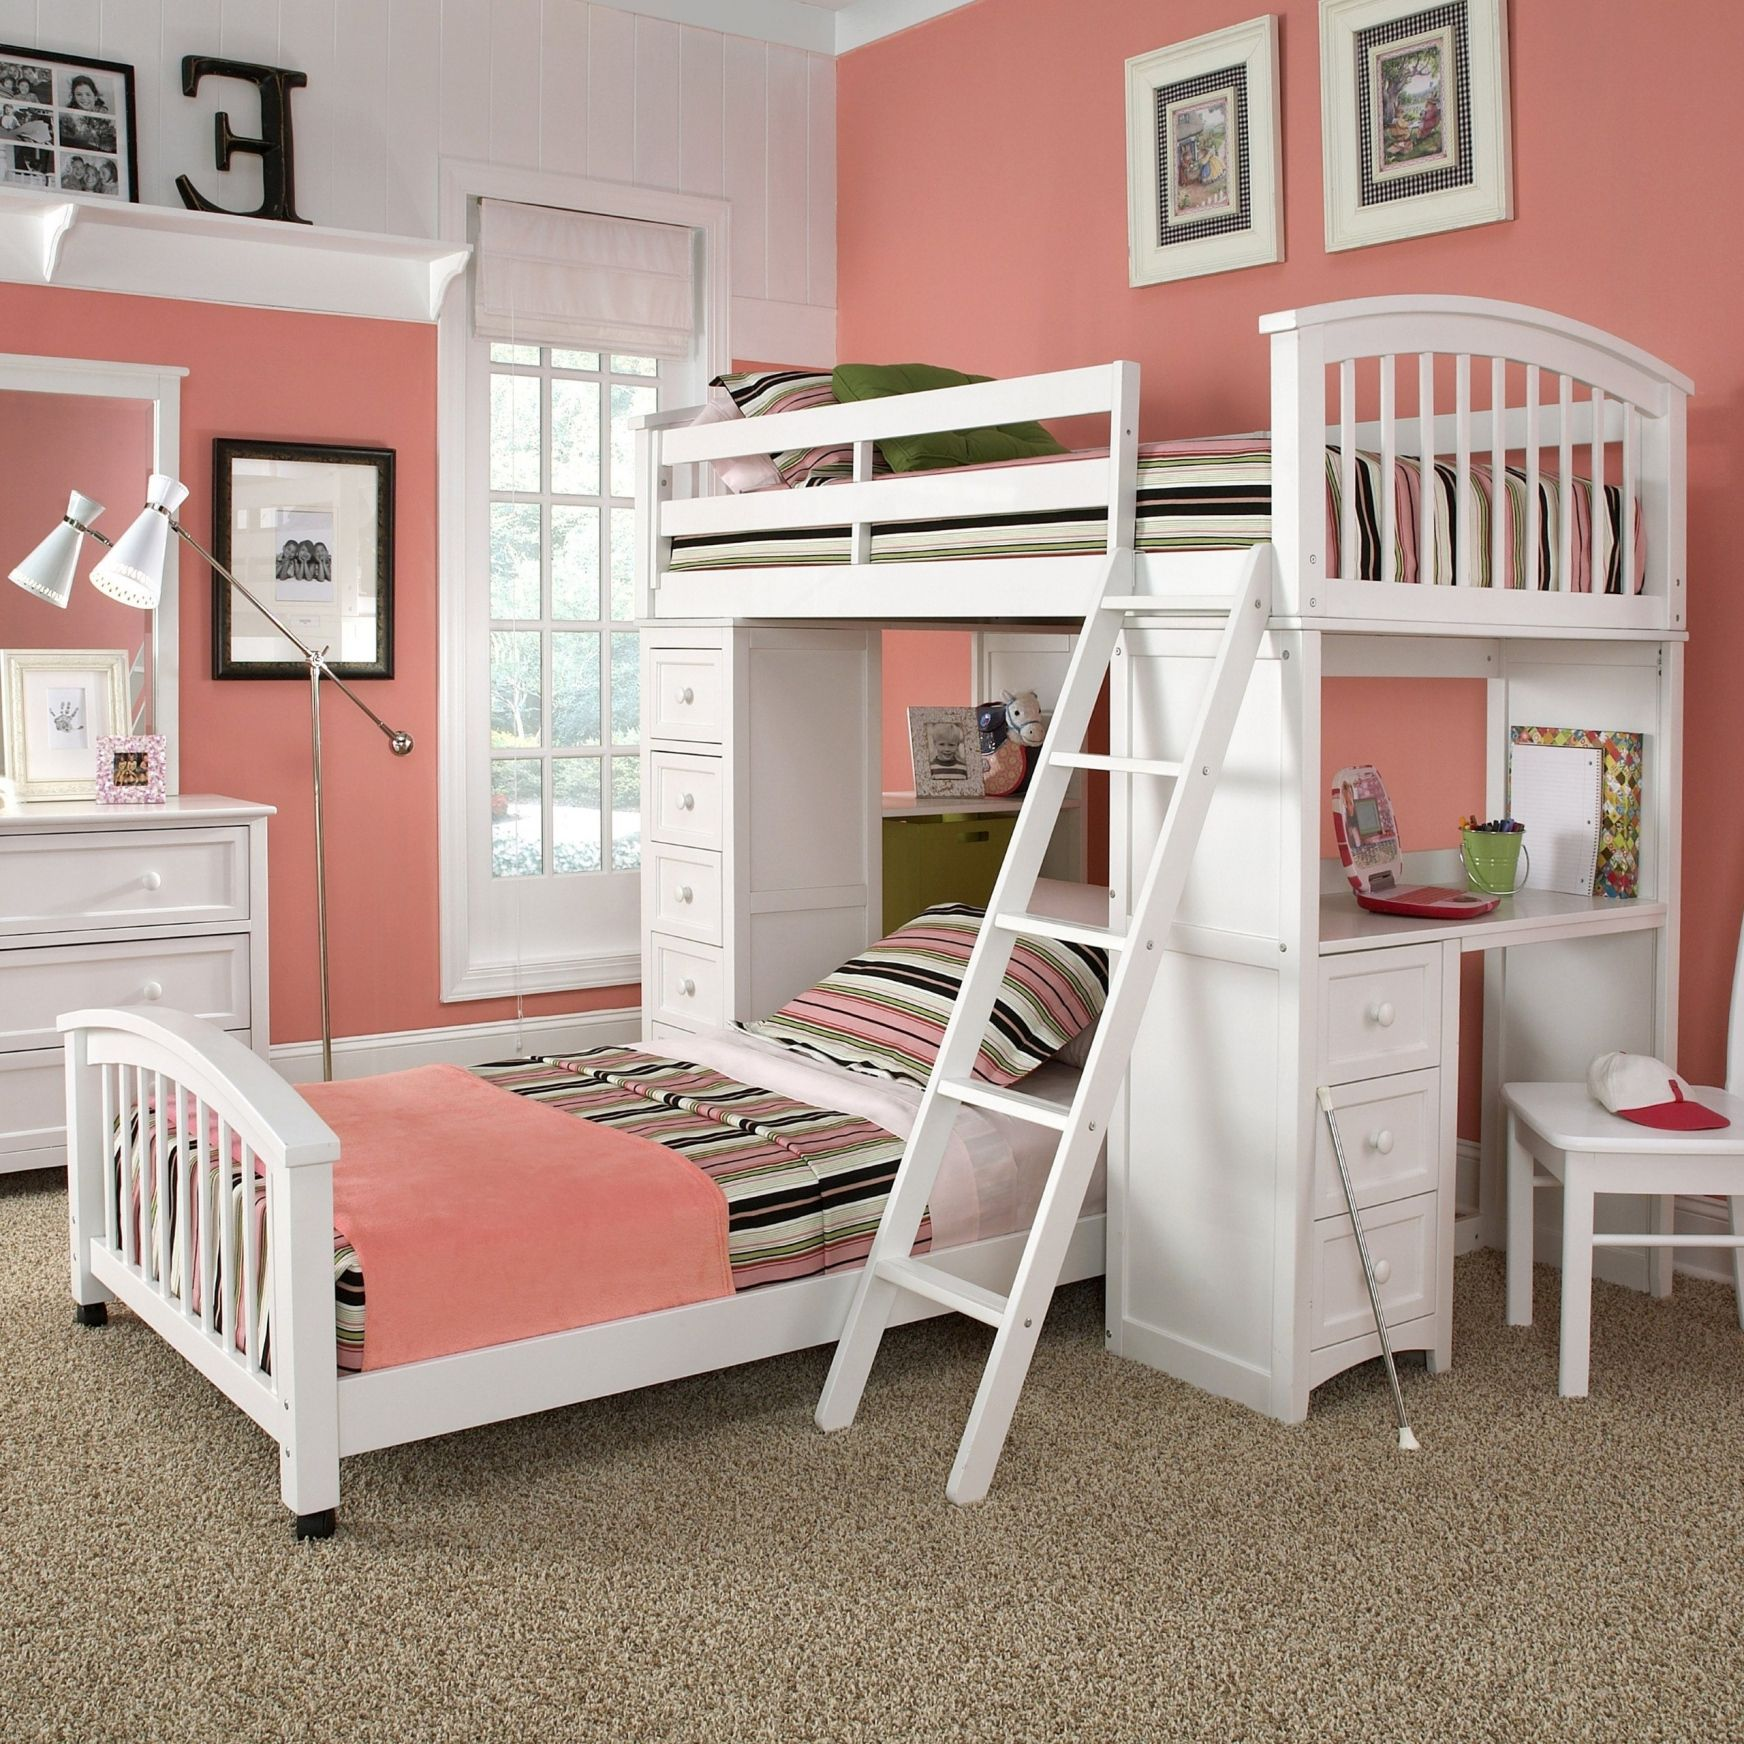 77 rooms to go kids girls beds interior paint colors bedroom rh pinterest com Rooms to Go Bed Sets Rooms to Go Princess Bed